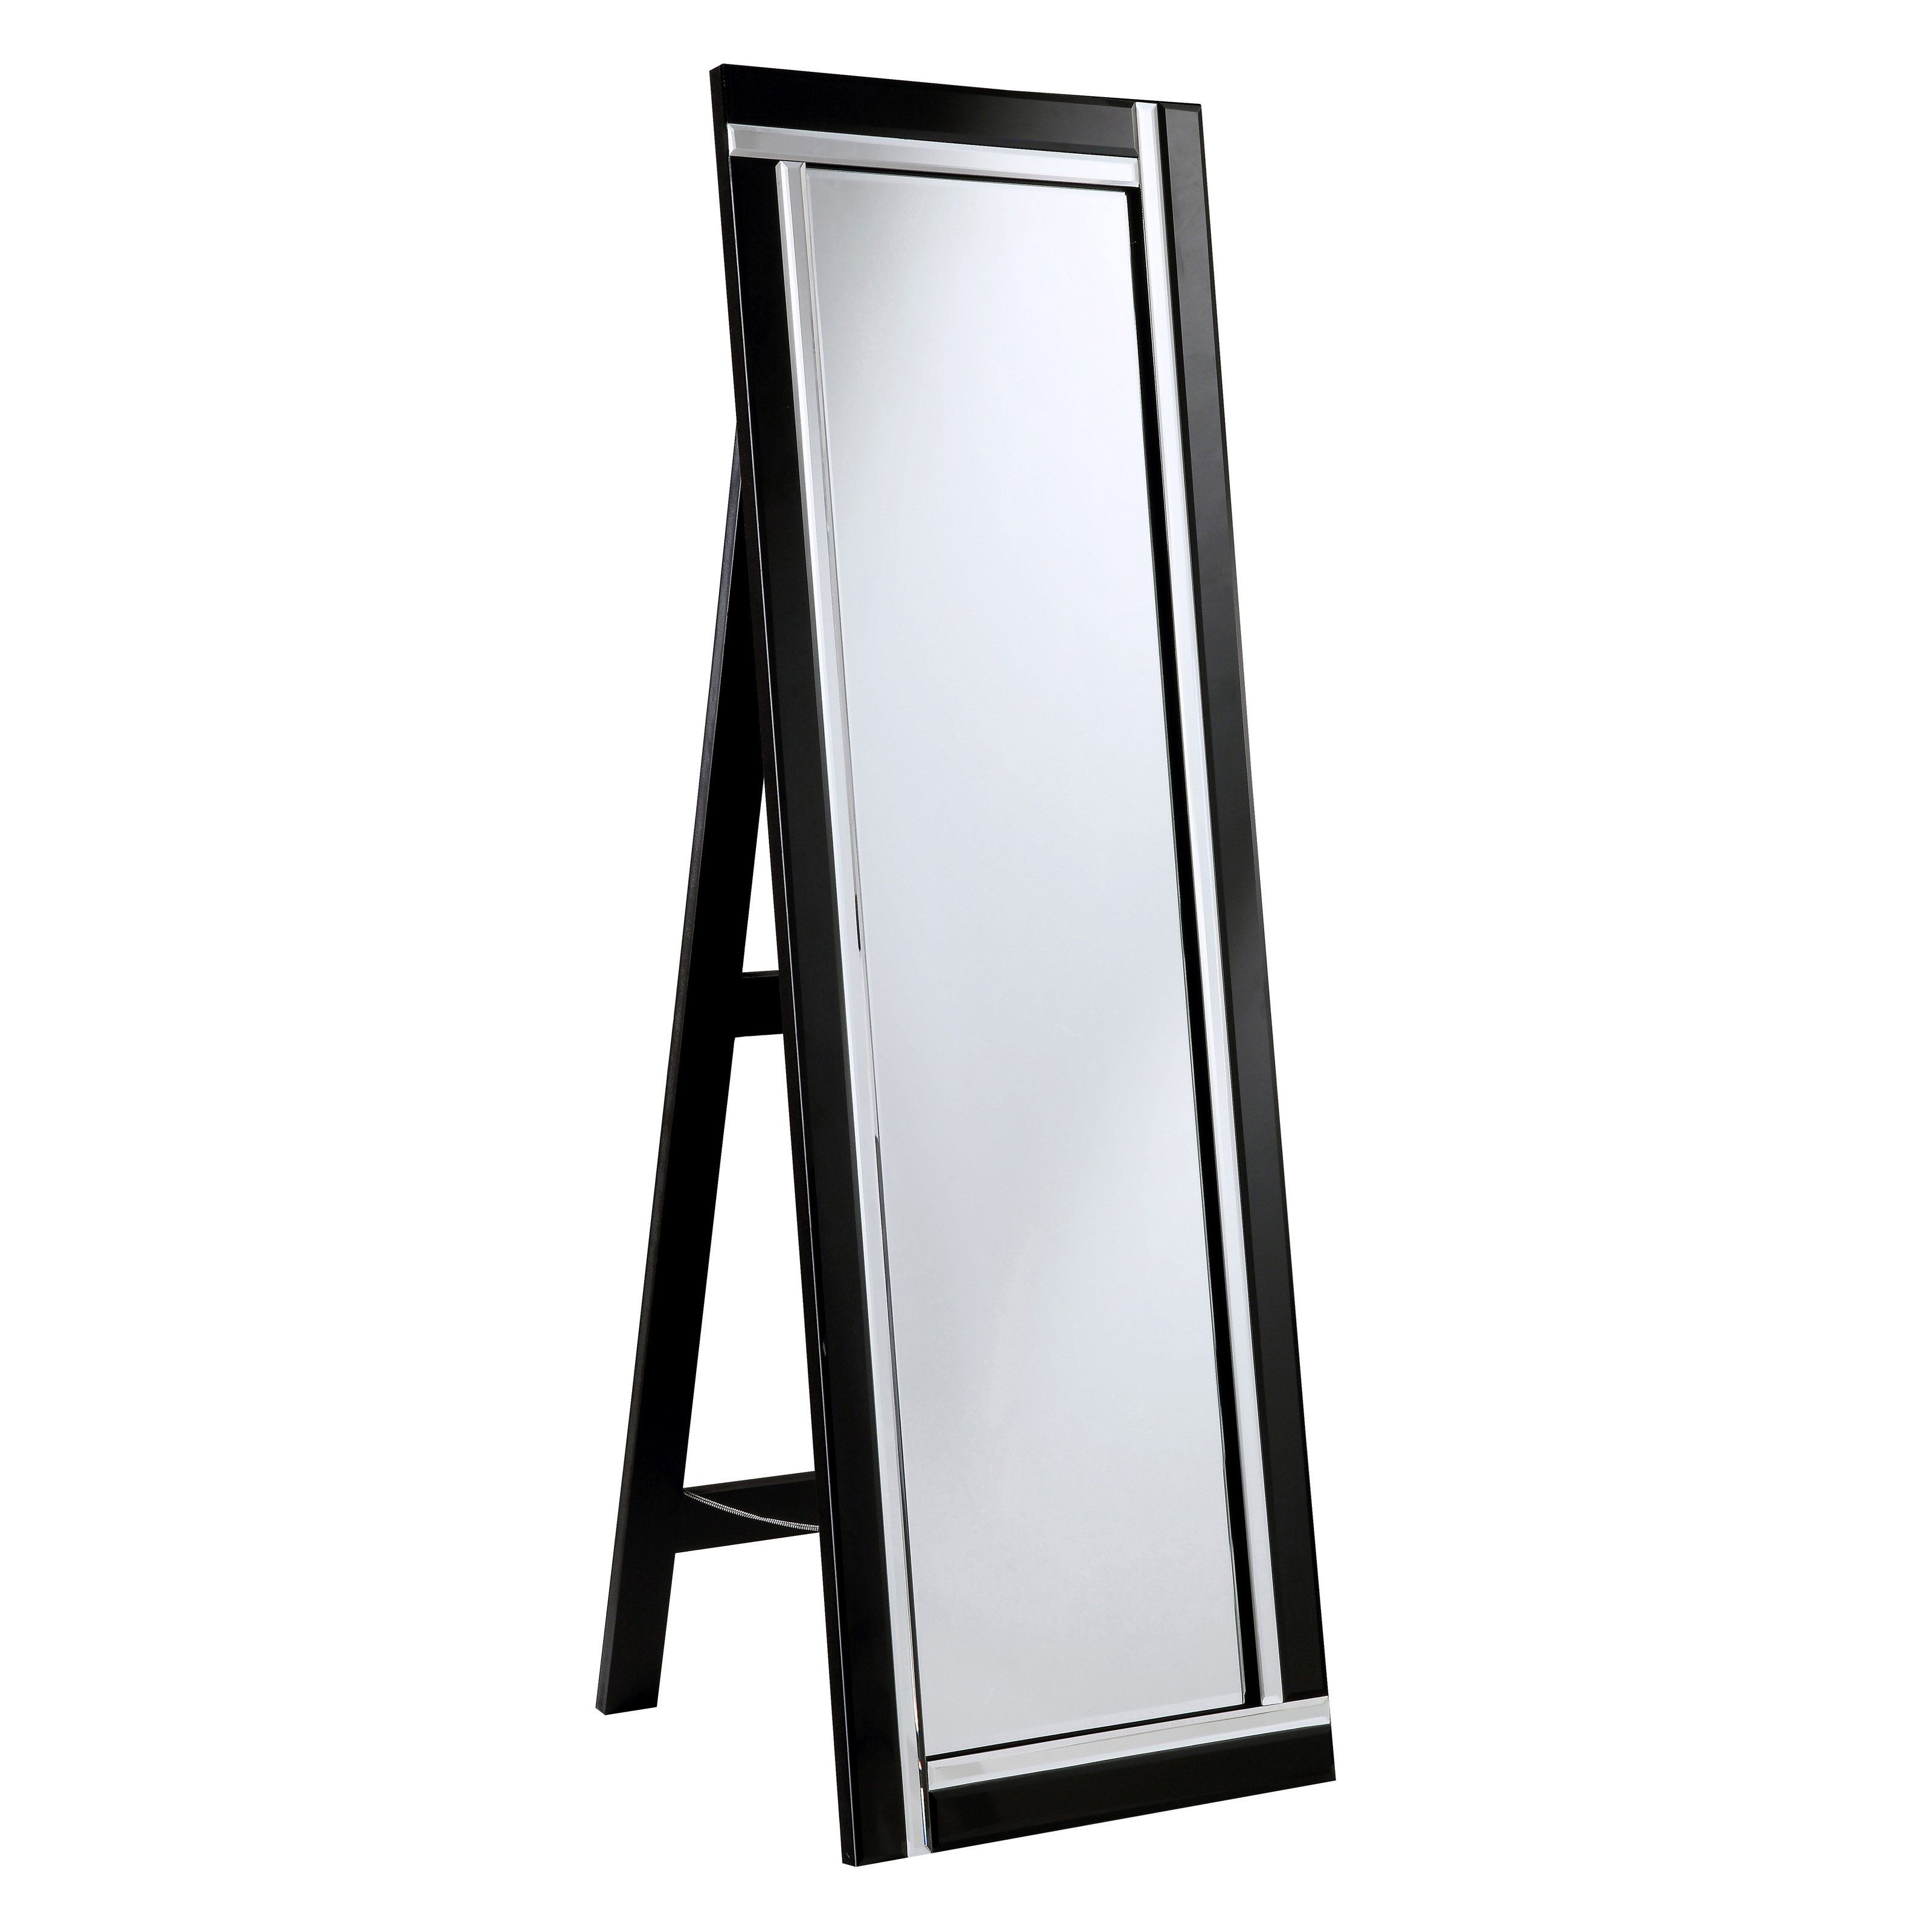 Elegant Furniture Amp Lighting Modern Floor Mirror 17 8w X 59h In From Hayneedle Com Modern Floor Mirrors Elegant Lighting Modern Mirror